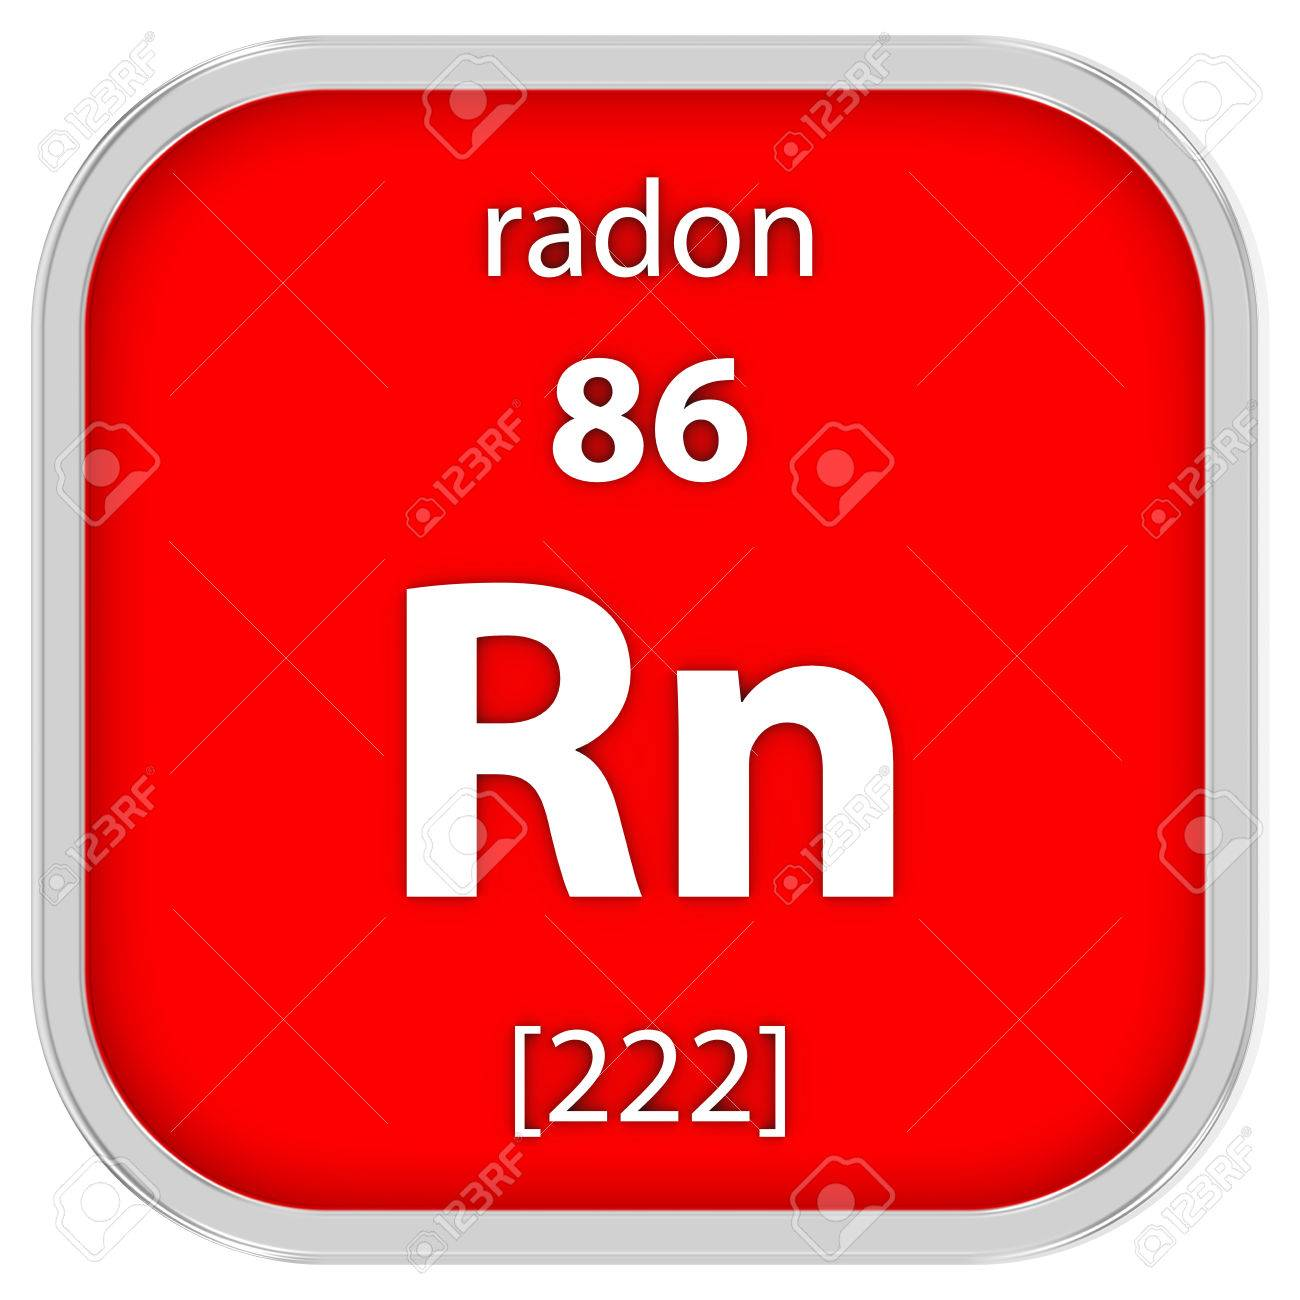 Radon periodic table facts image collections periodic table images radon periodic table facts gallery periodic table images radon periodic table facts image collections periodic table gamestrikefo Image collections